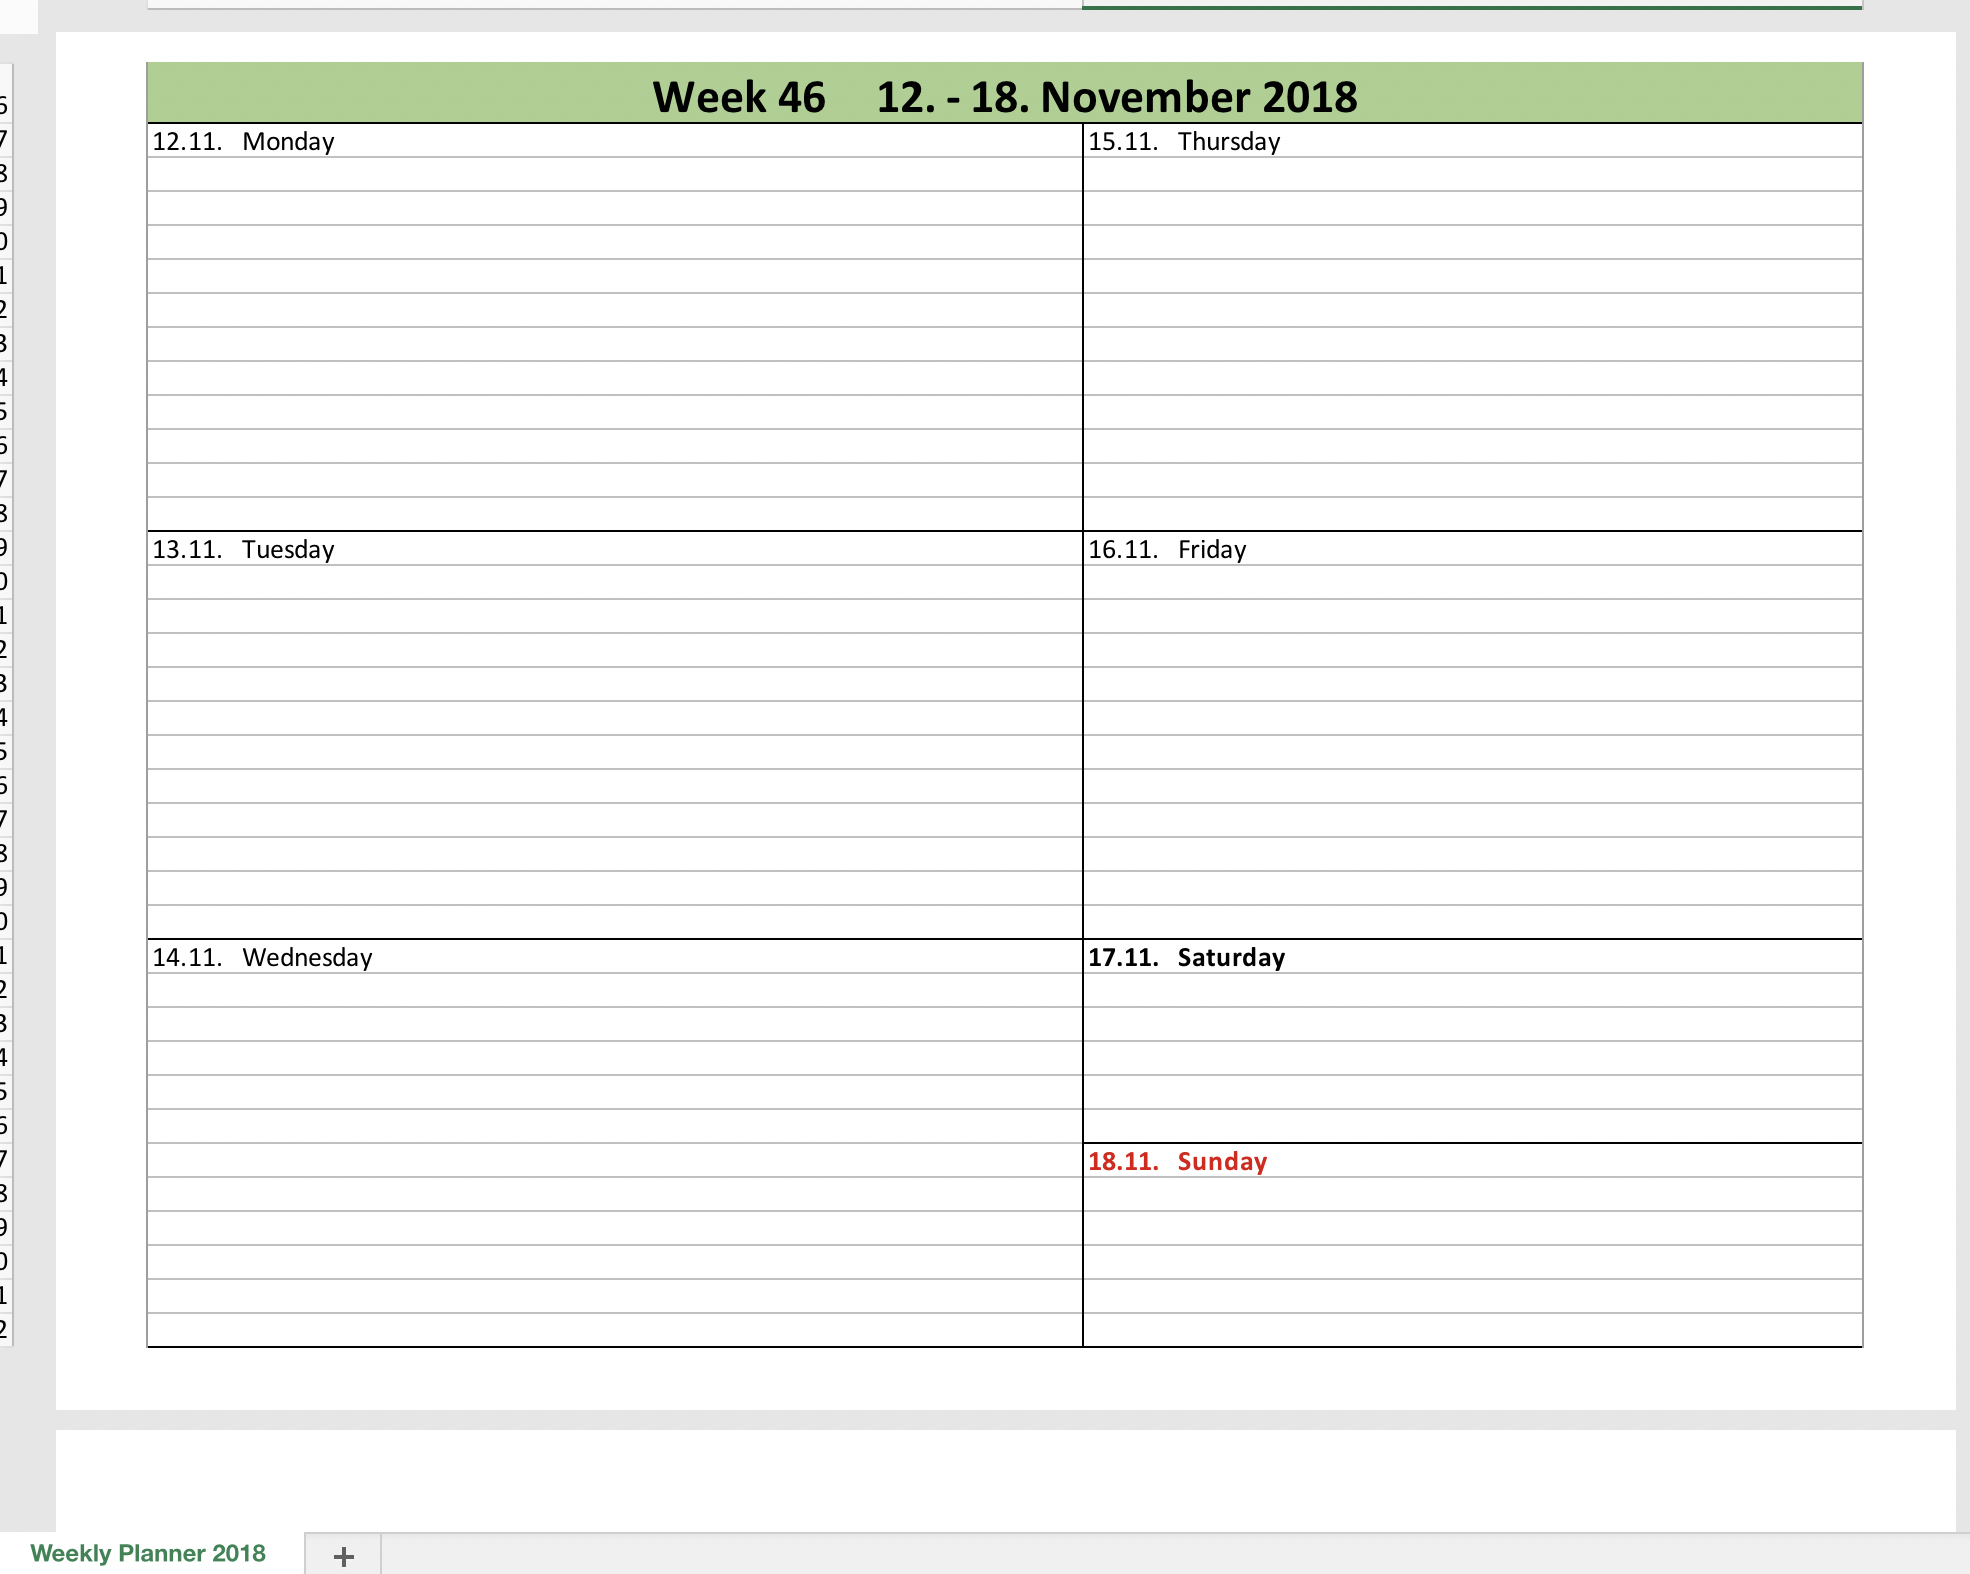 Weekly Calendar 2018 With Excel | Excel Templates For Every Purpose intended for Excel Weekly Calendar Template